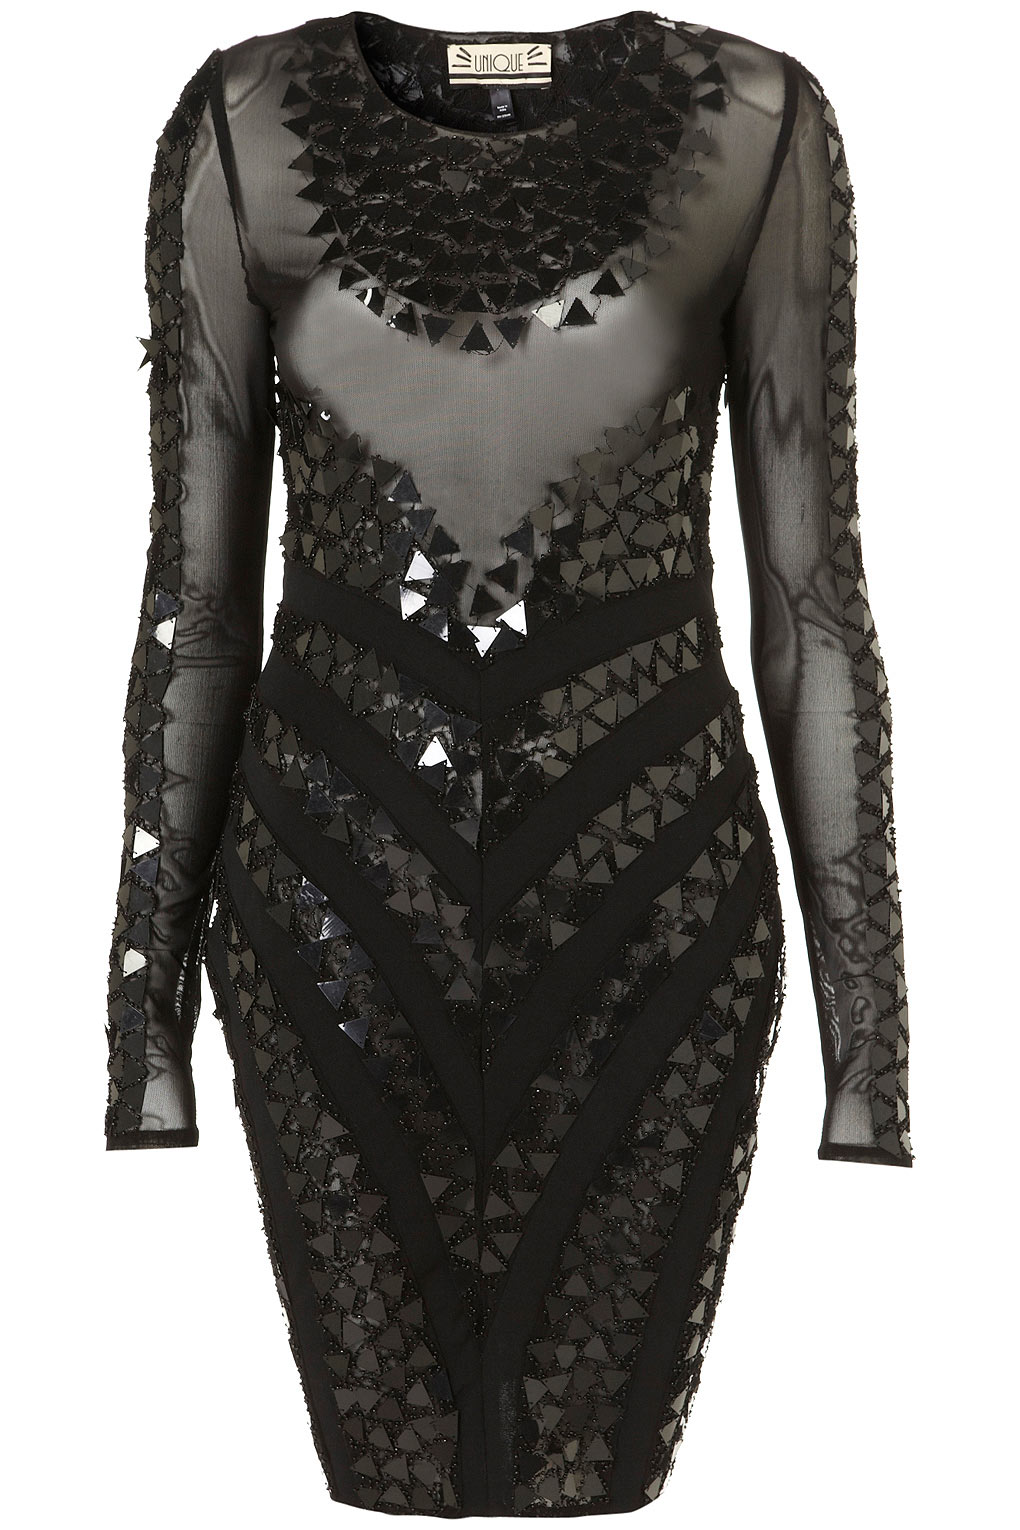 Topshop Pyramid Sequin Dress By Unique In Black Lyst